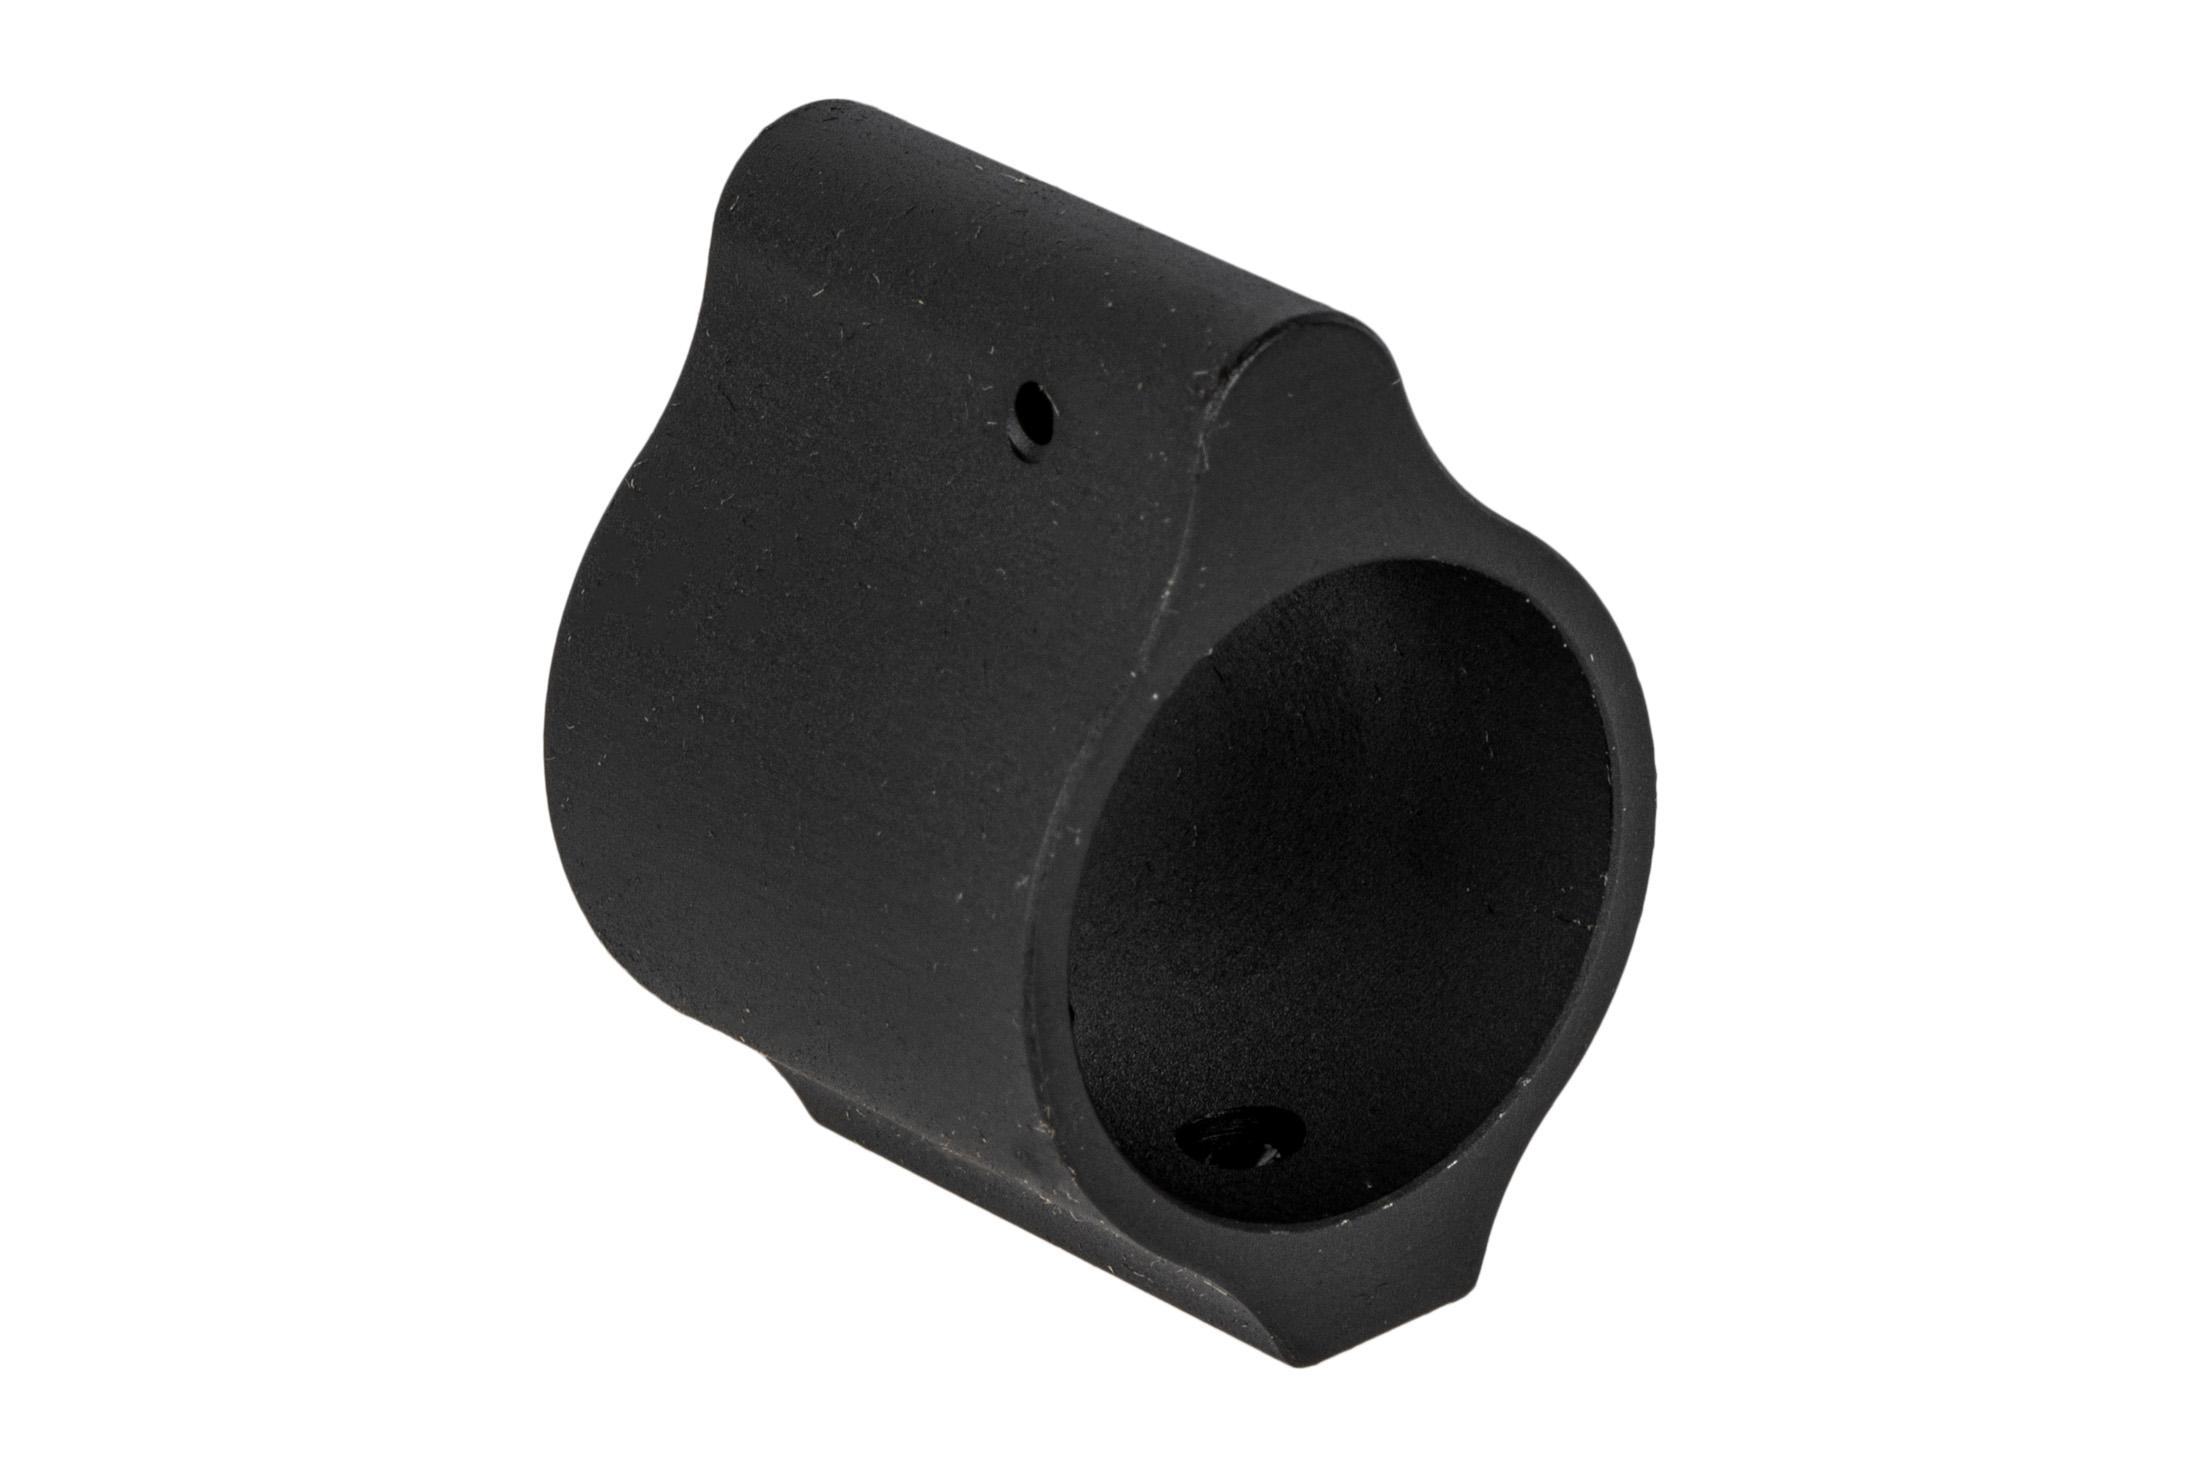 Aero Precision low profile gas block without logo fits .875 barrels with a tough phosphate finish